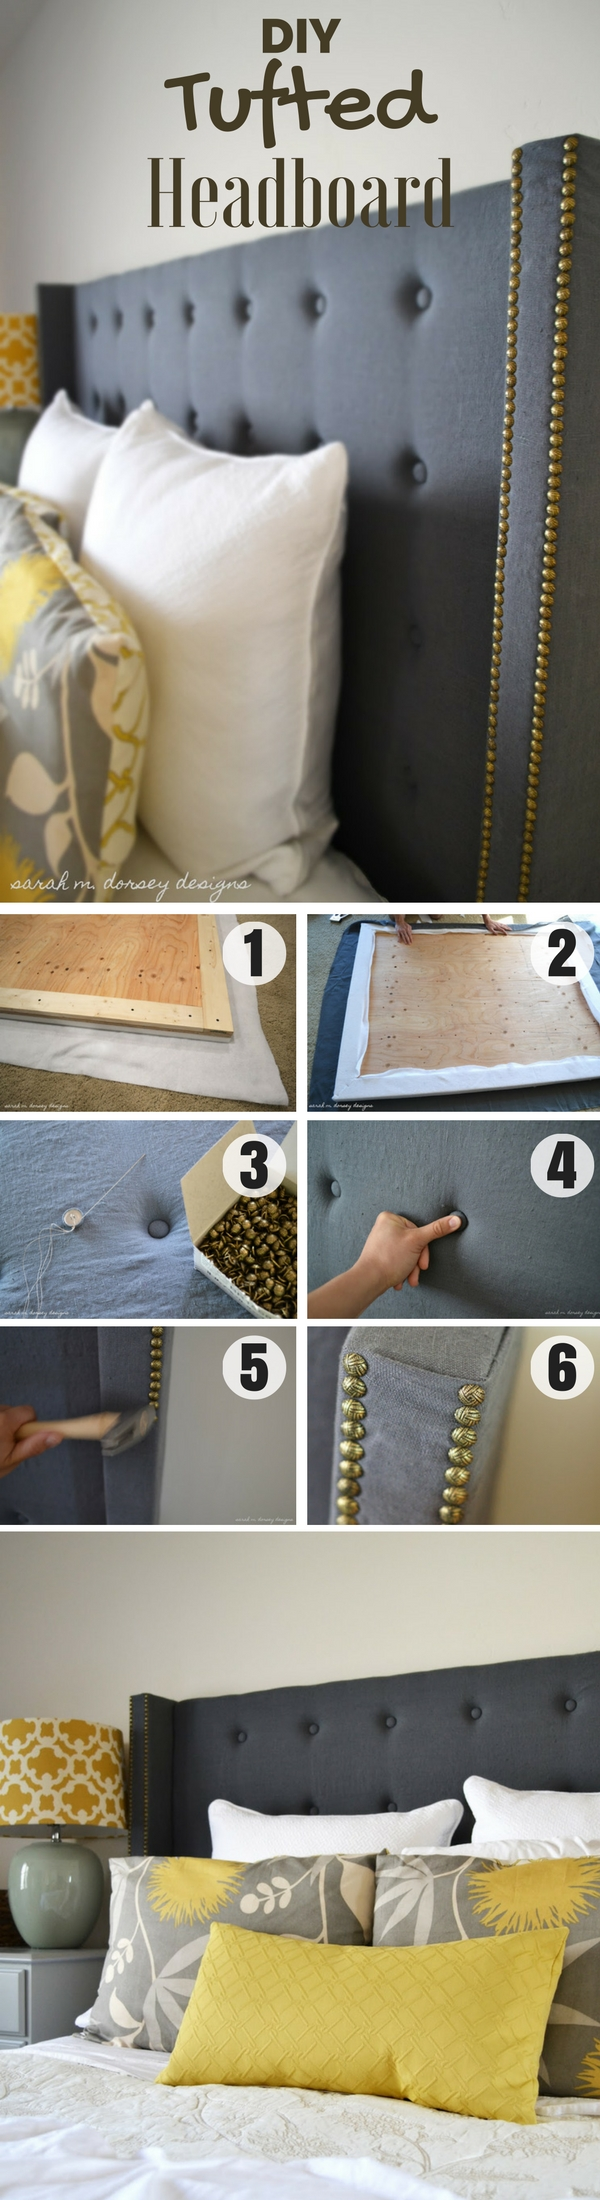 12 Aesthetic Headboards For Your Bedroom Diy Fabric